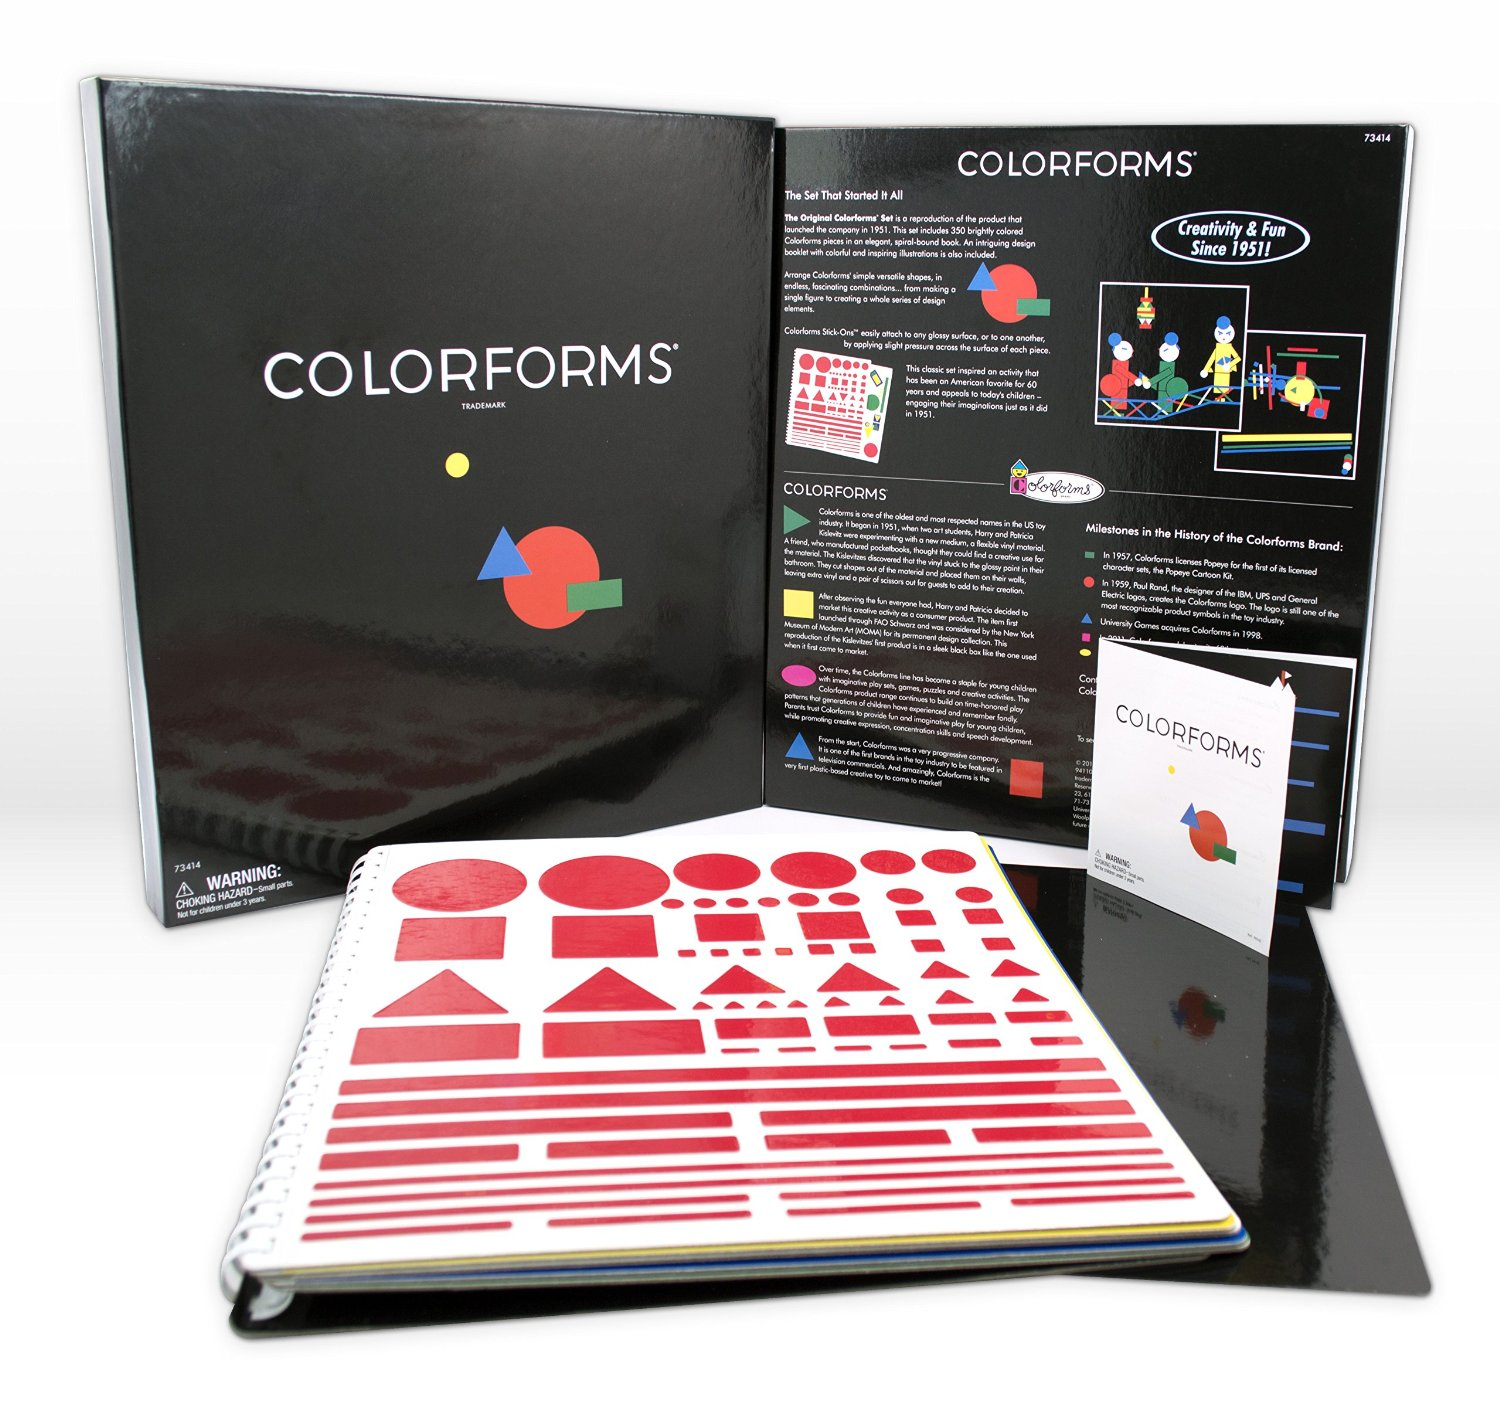 The color-play coloring book moma - Like Many Children Of My Era There Were Coloring Books And Paper Dolls Colorforms And Modeling Clay Etch A Sketch Play Doh And Silly Putty Lots Of